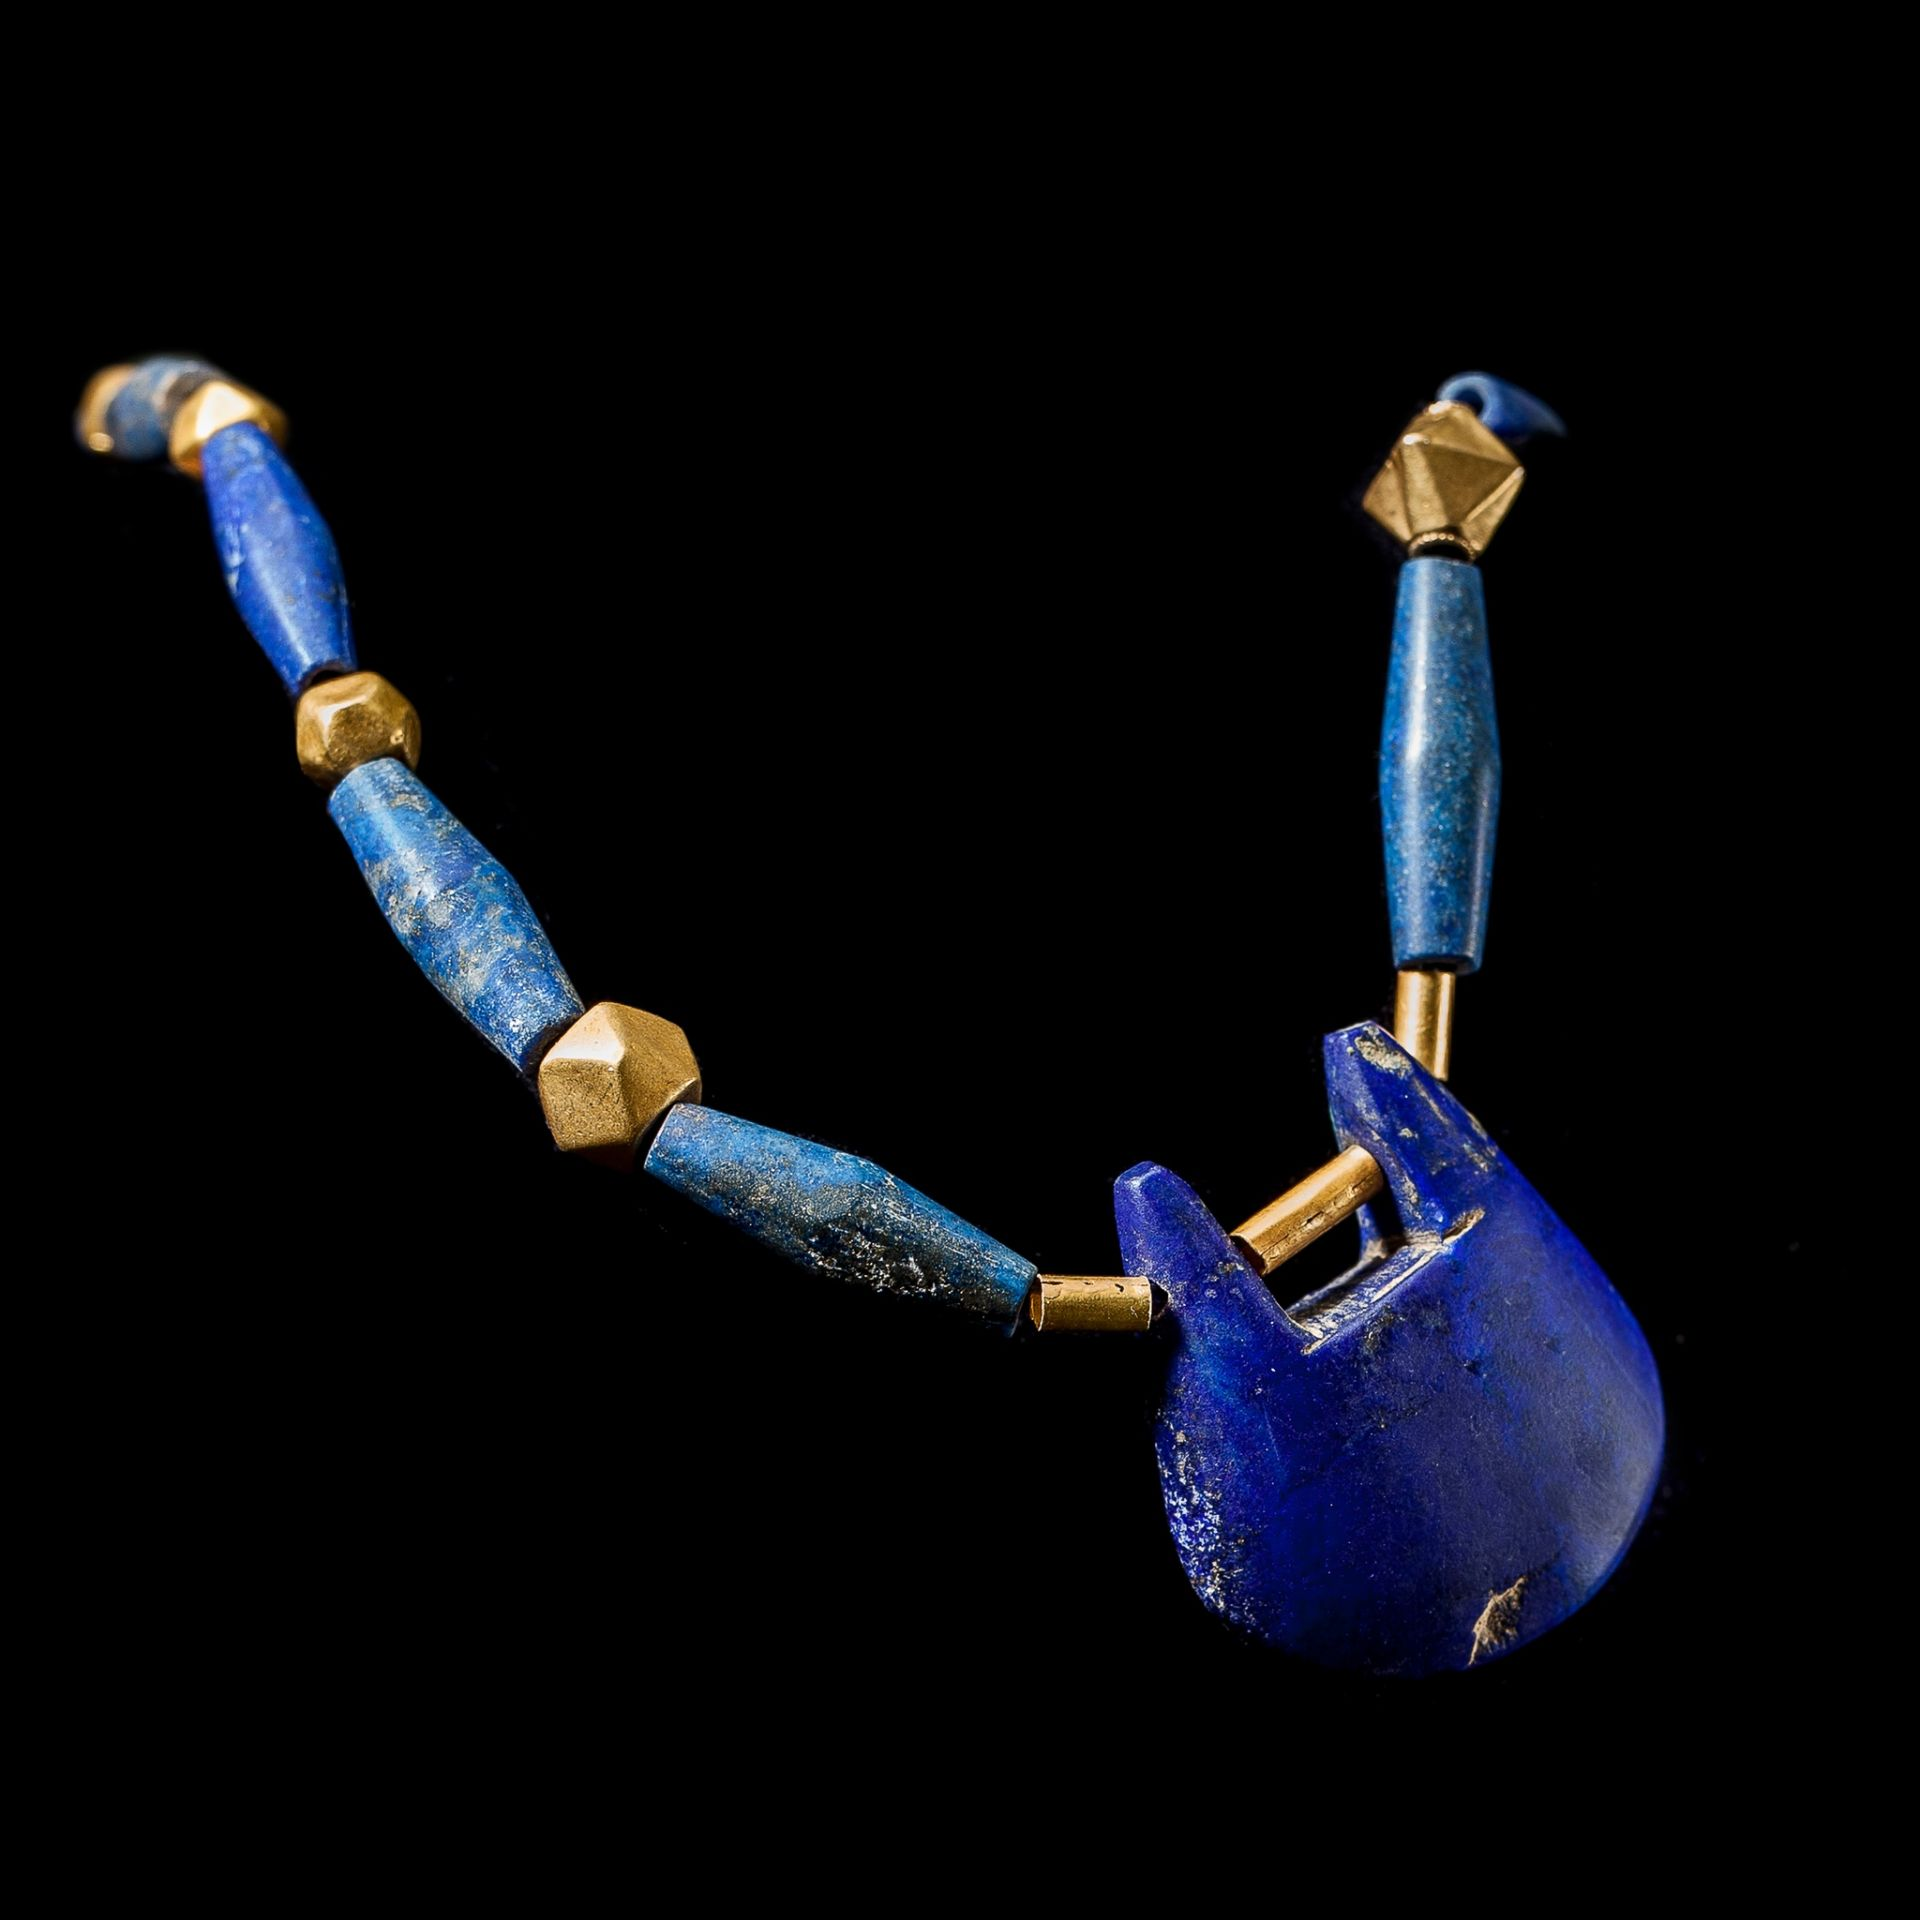 WESTERN ASIATIC LAPIS AND GOLD PENDANT NECKLACE NEAR EAST, 1ST MILLENNIUM B.C. - Image 2 of 2